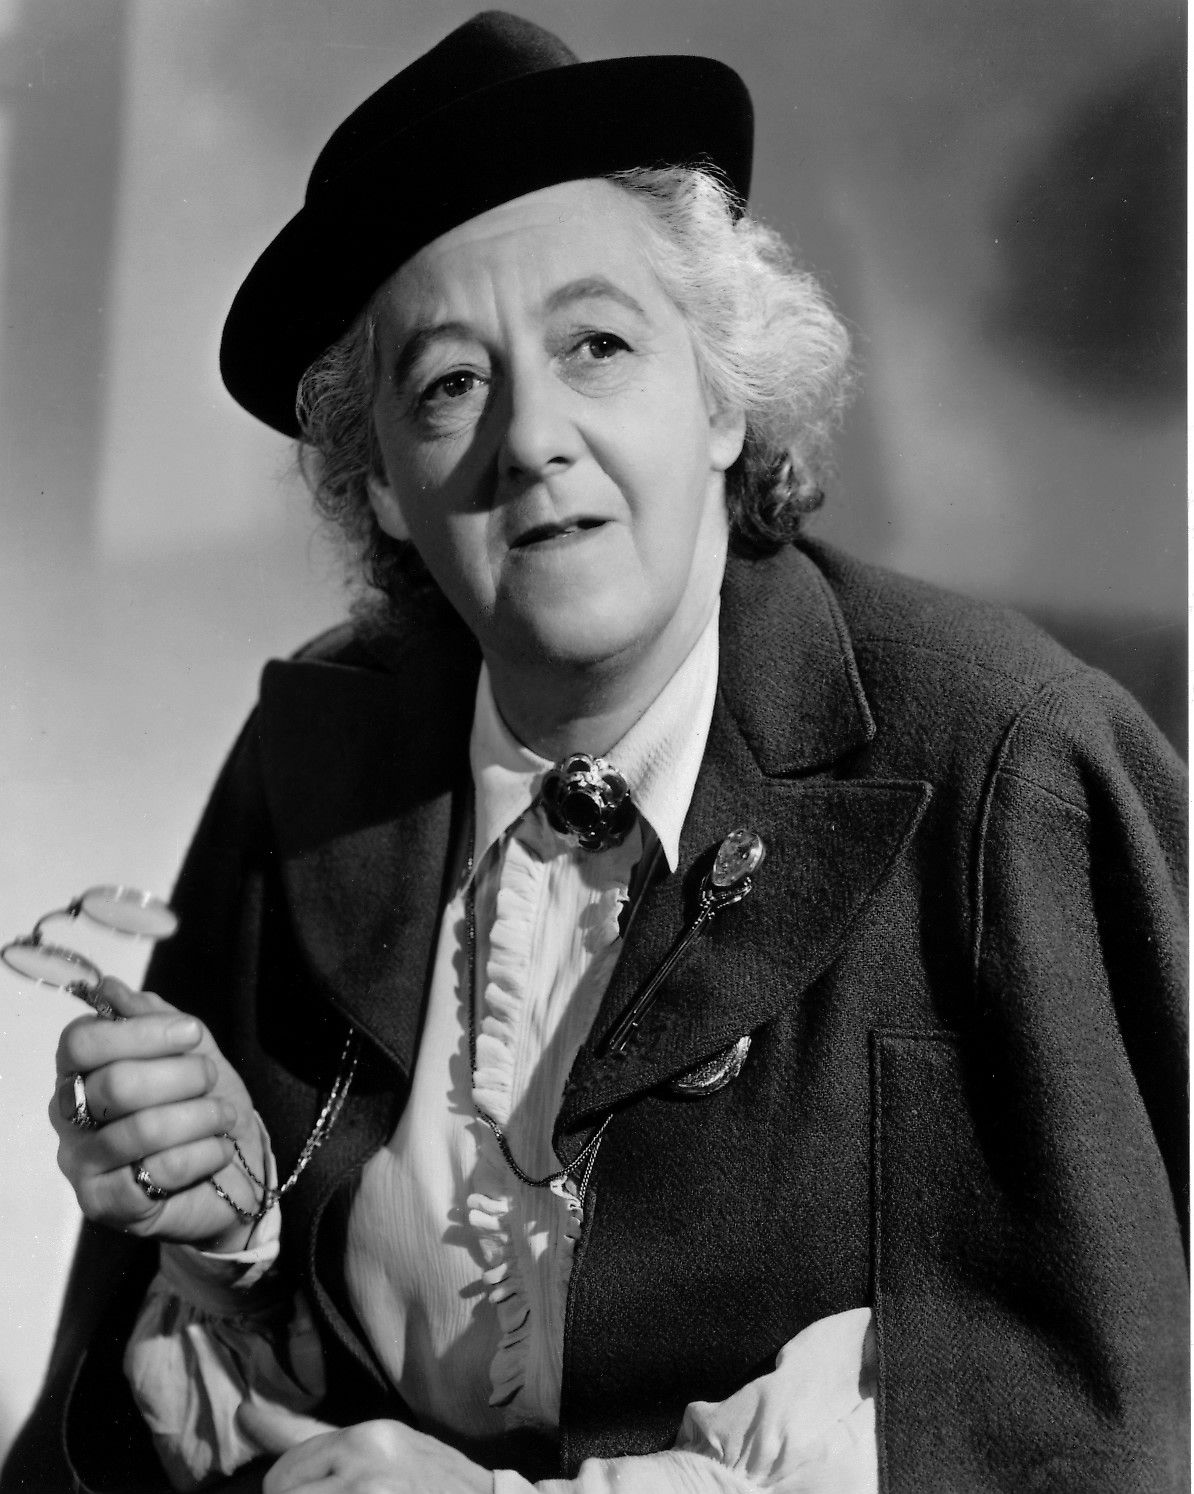 Margaret Rutherford (May 11, 1892 - May 22, 1972) British actress (Miss Marple).